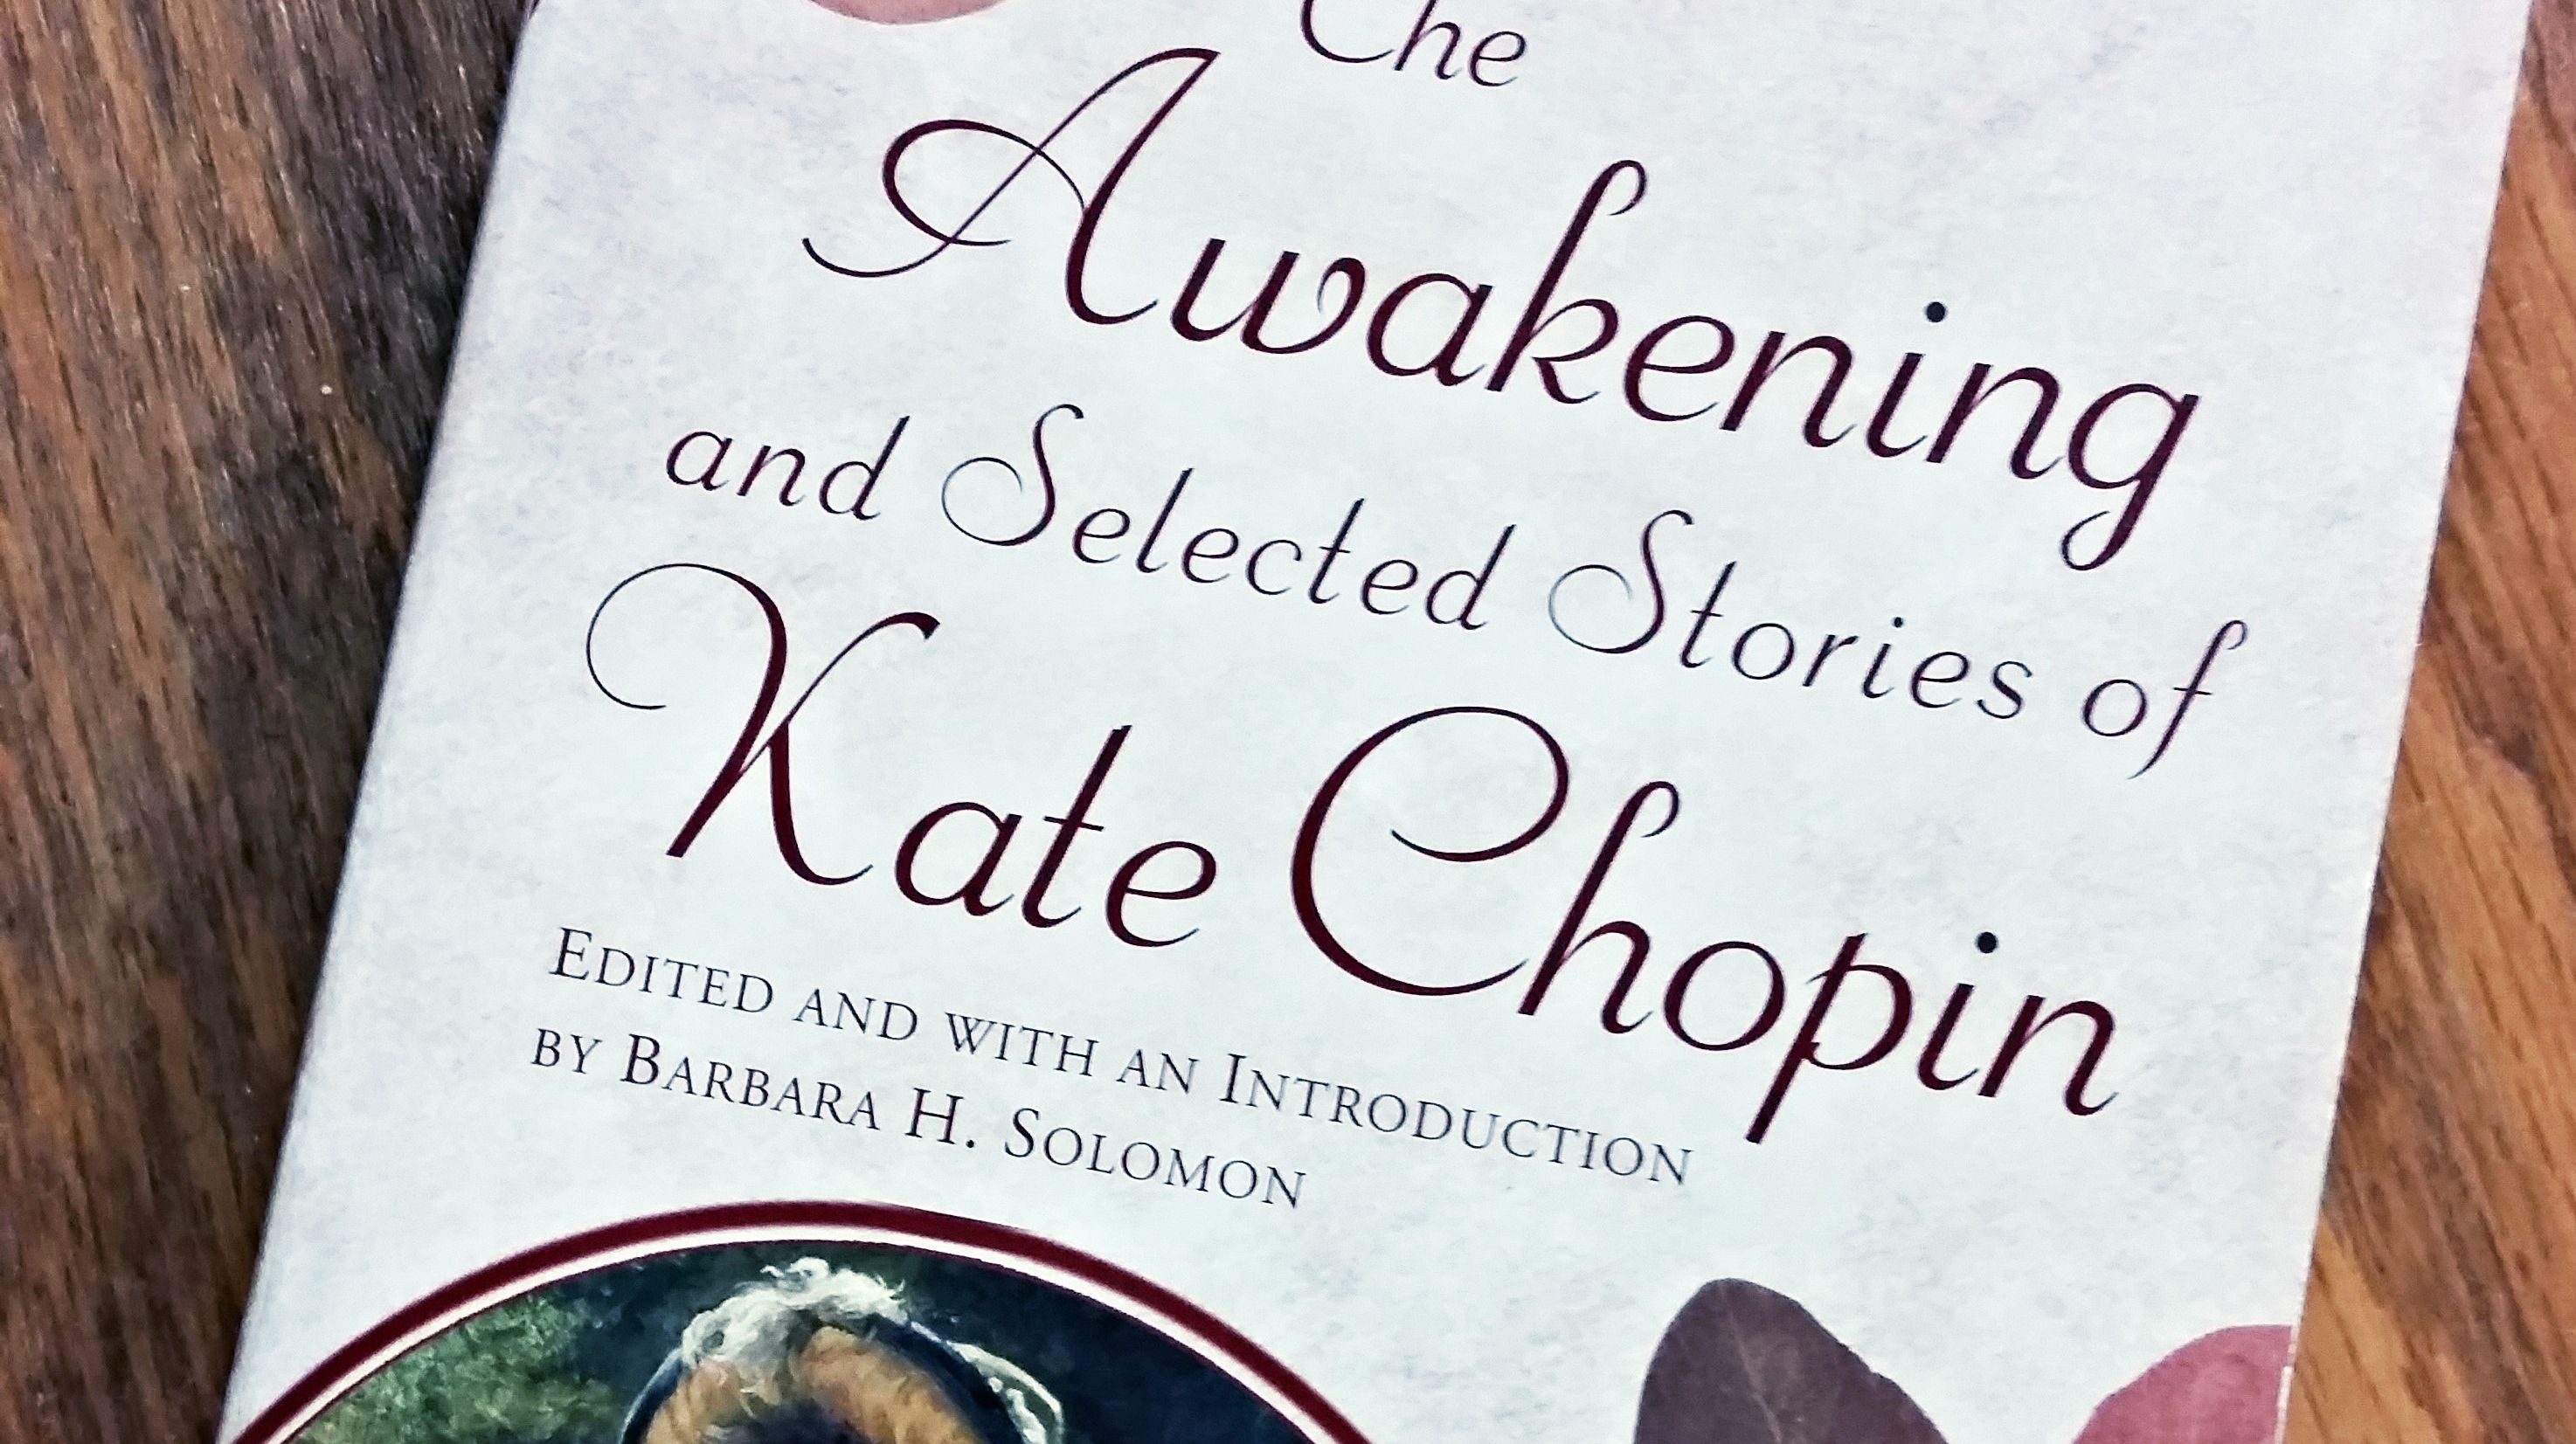 15 Facts About Kate Chopin's The Awakening | Mental Floss